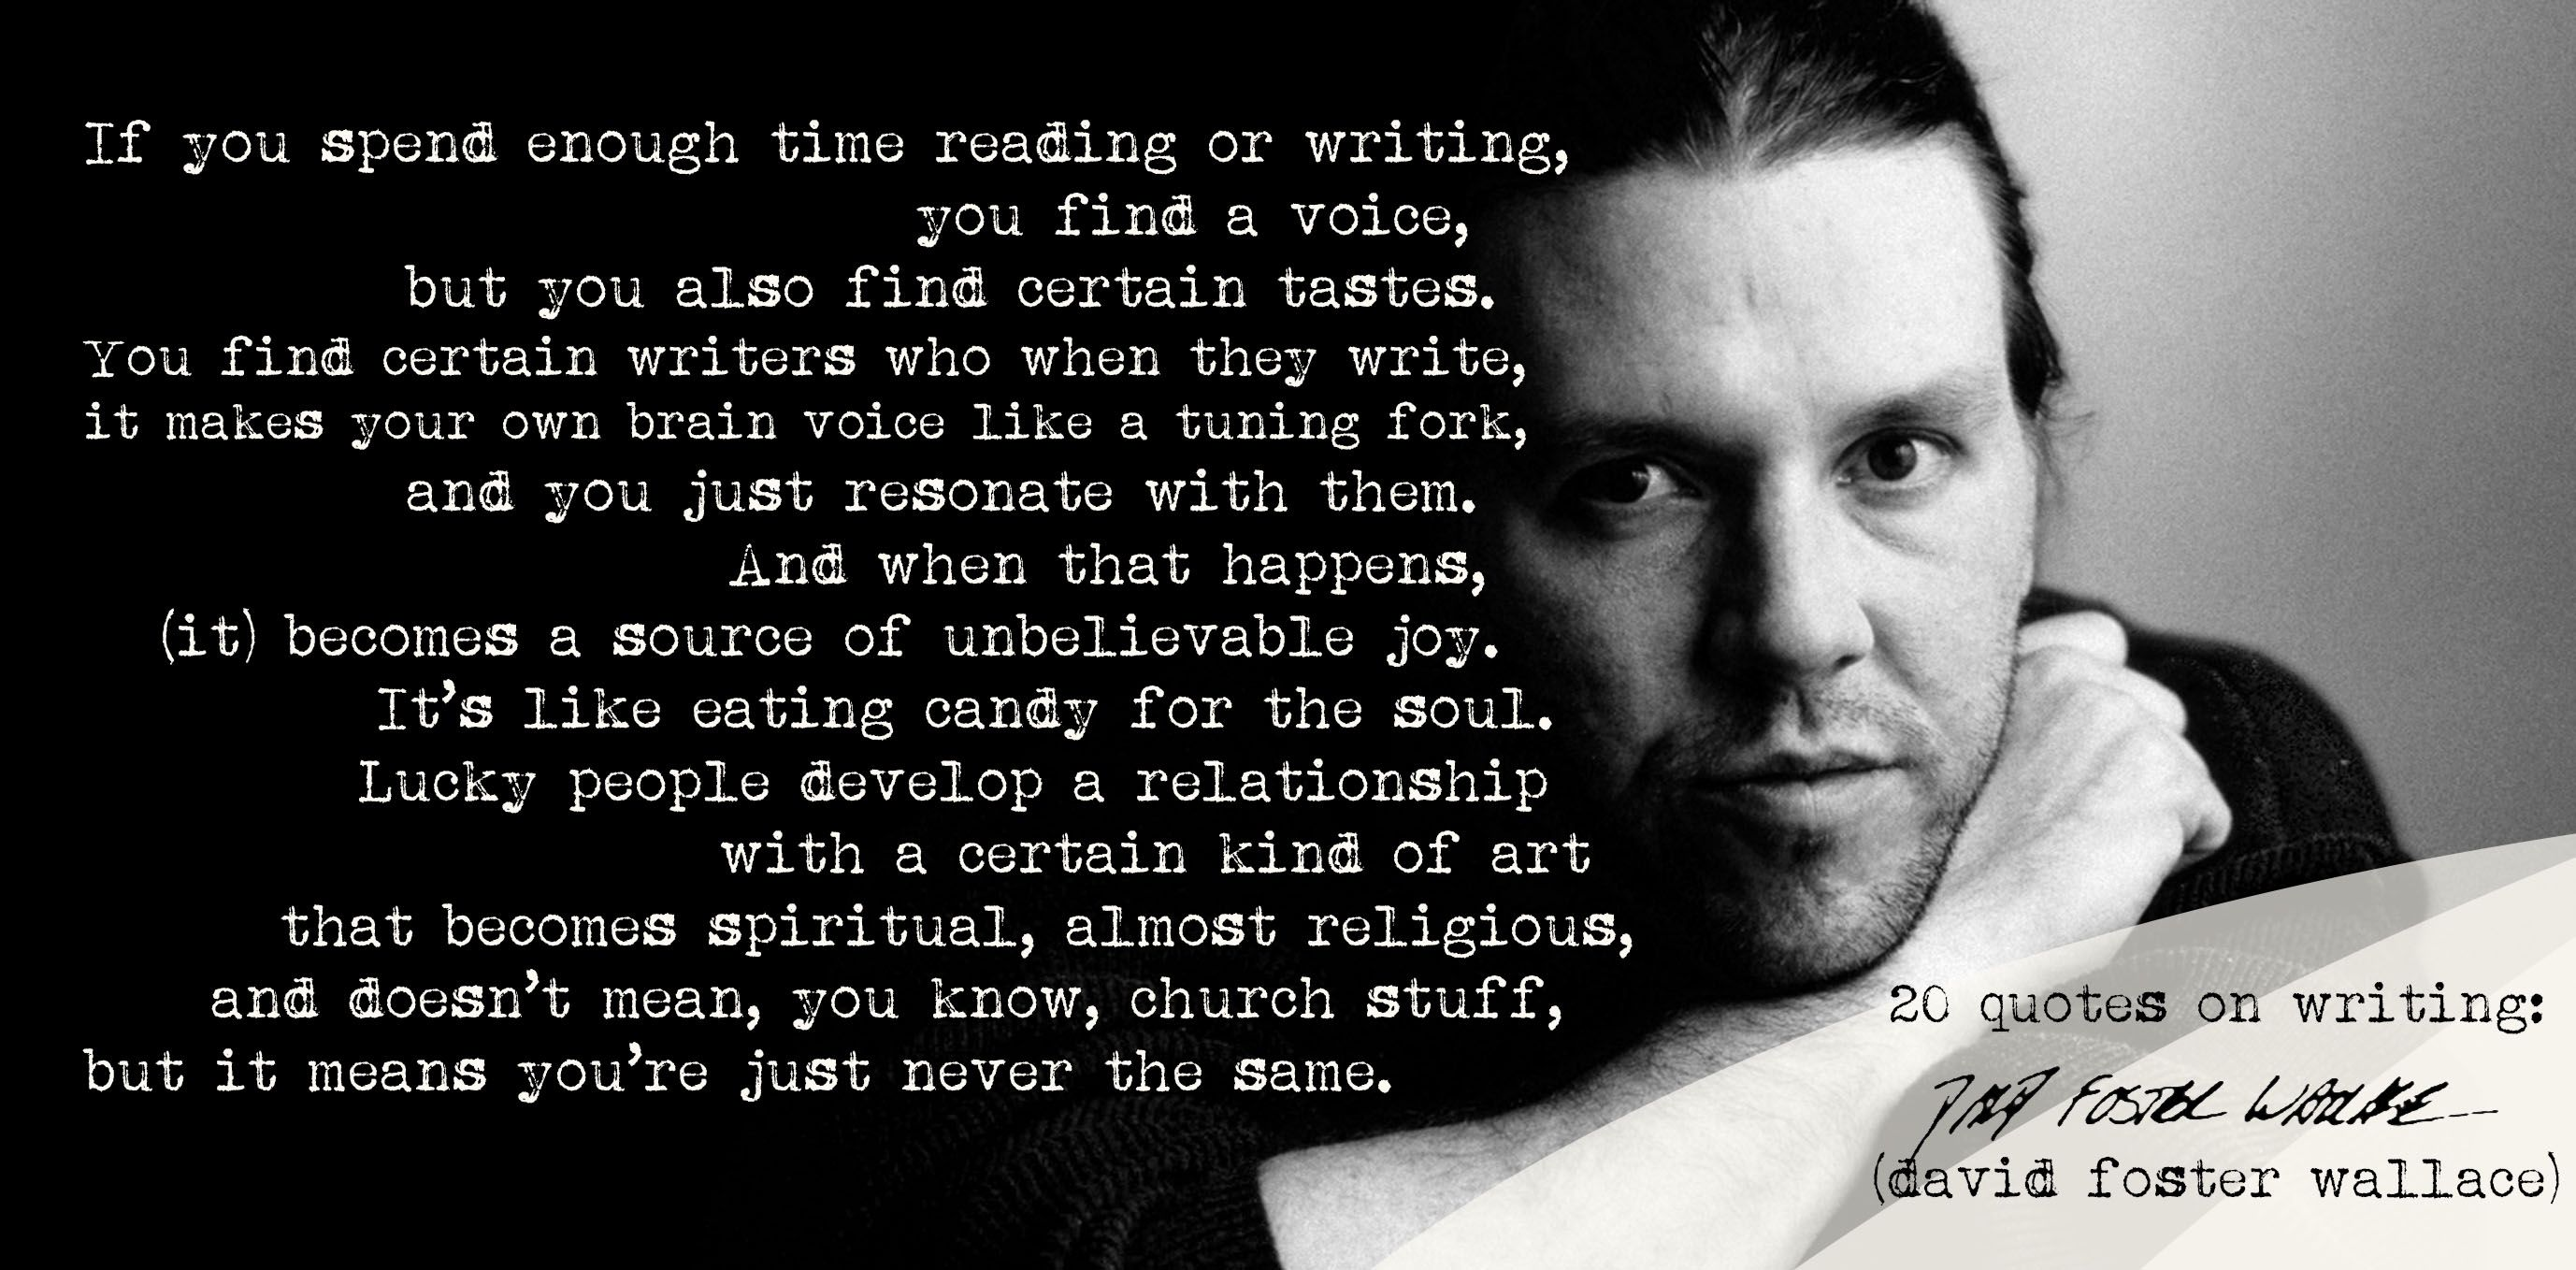 David Foster Wallace Searches For >> Preview Of Wes Books Video Essay Books And Gifts For The